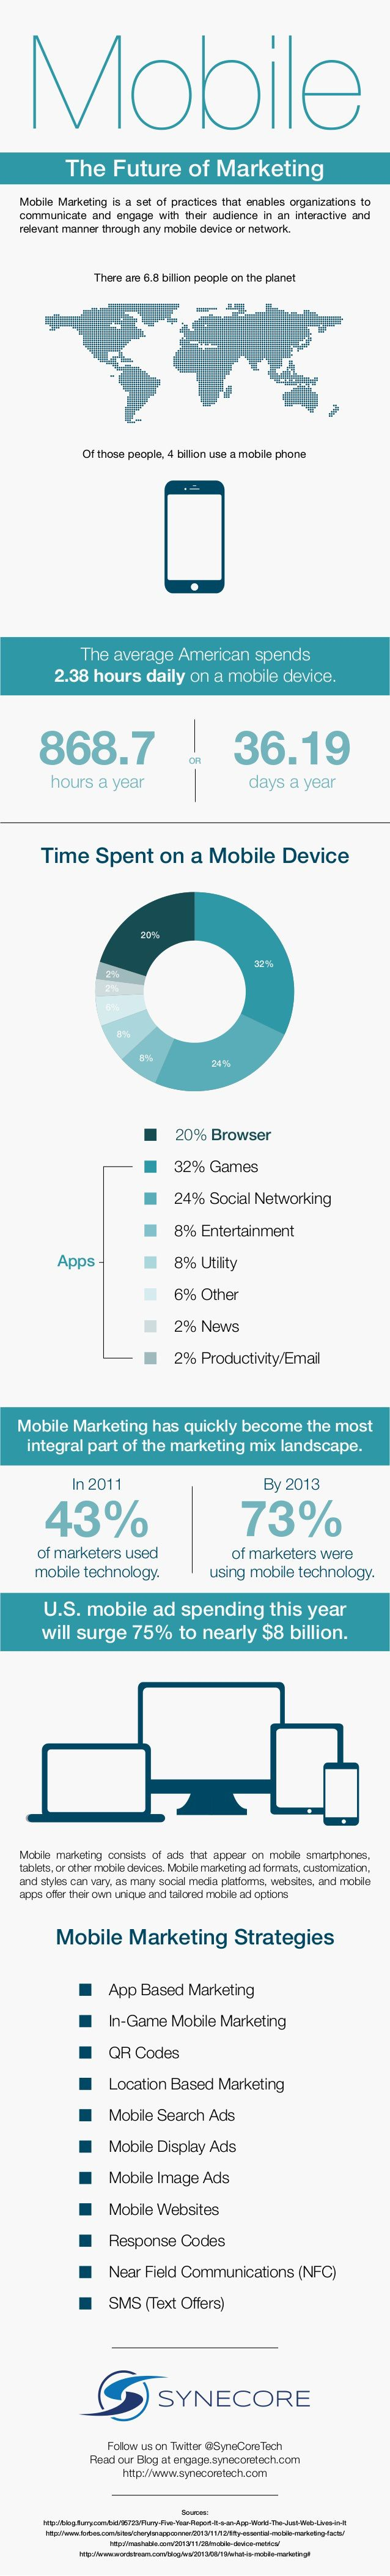 Mobile the future of marketing #infografia #infographic #marketing